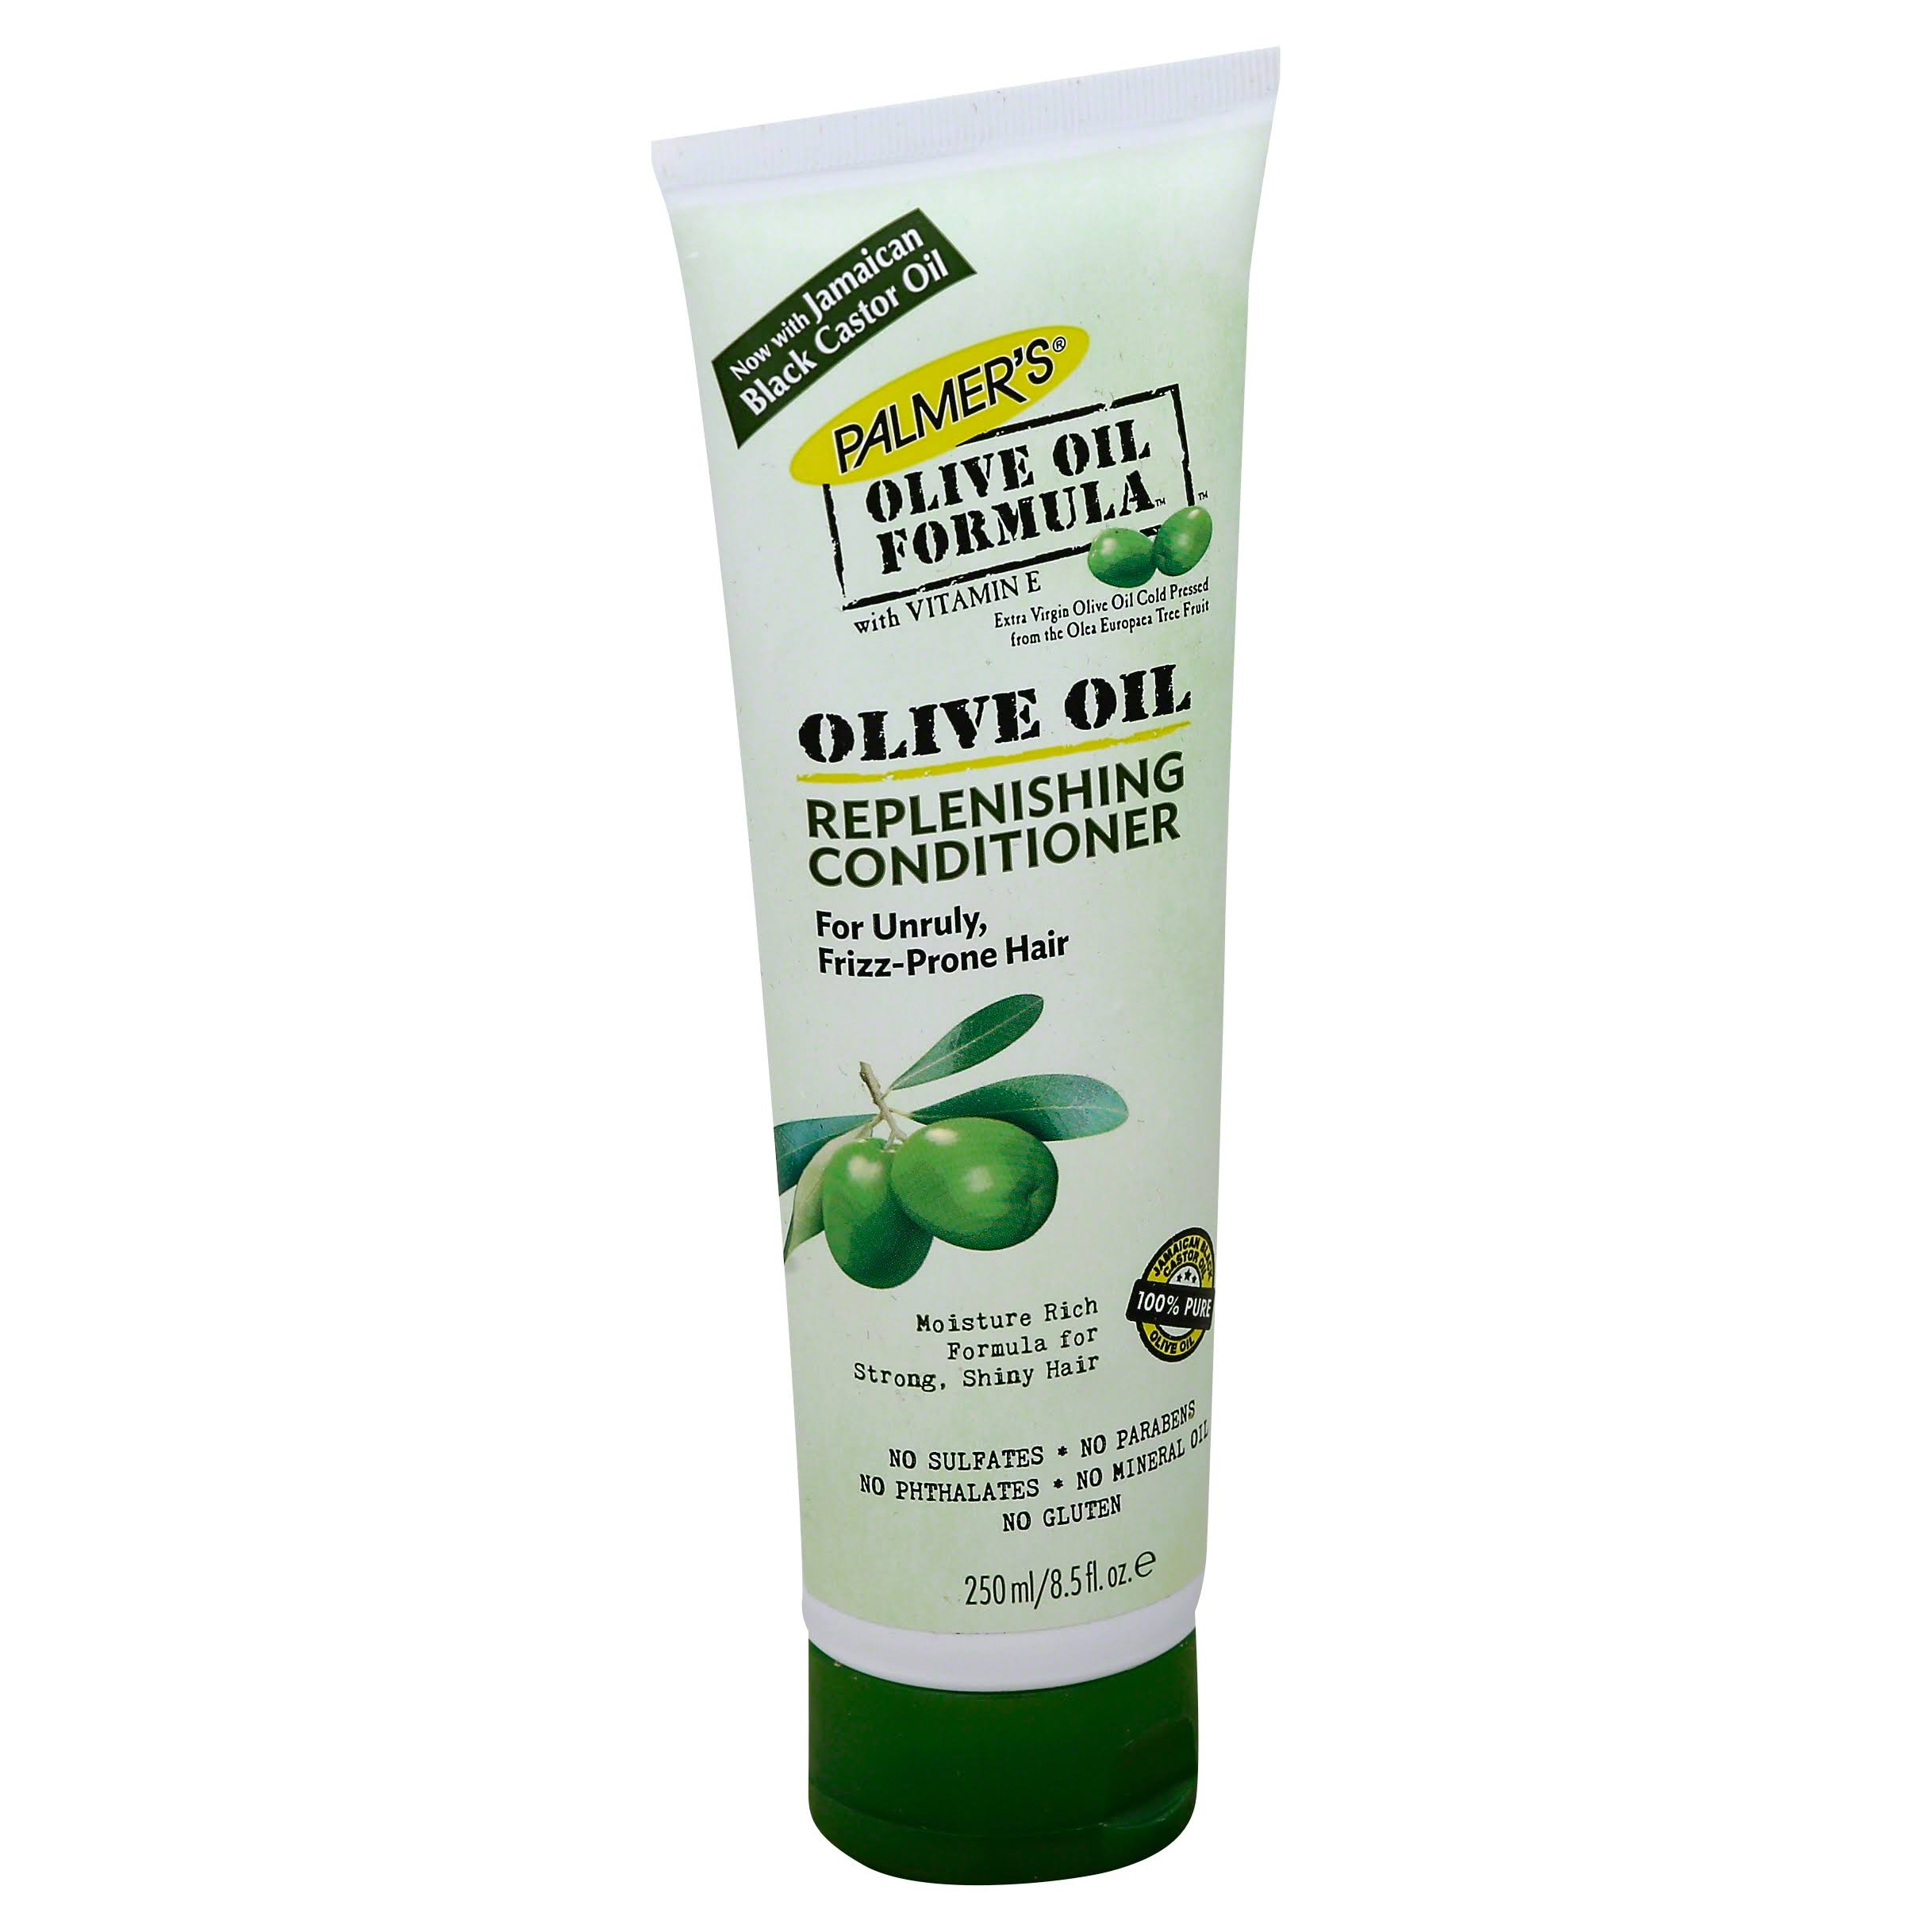 Palmer's Olive Oil Formula Replenishing Conditioner - 250ml